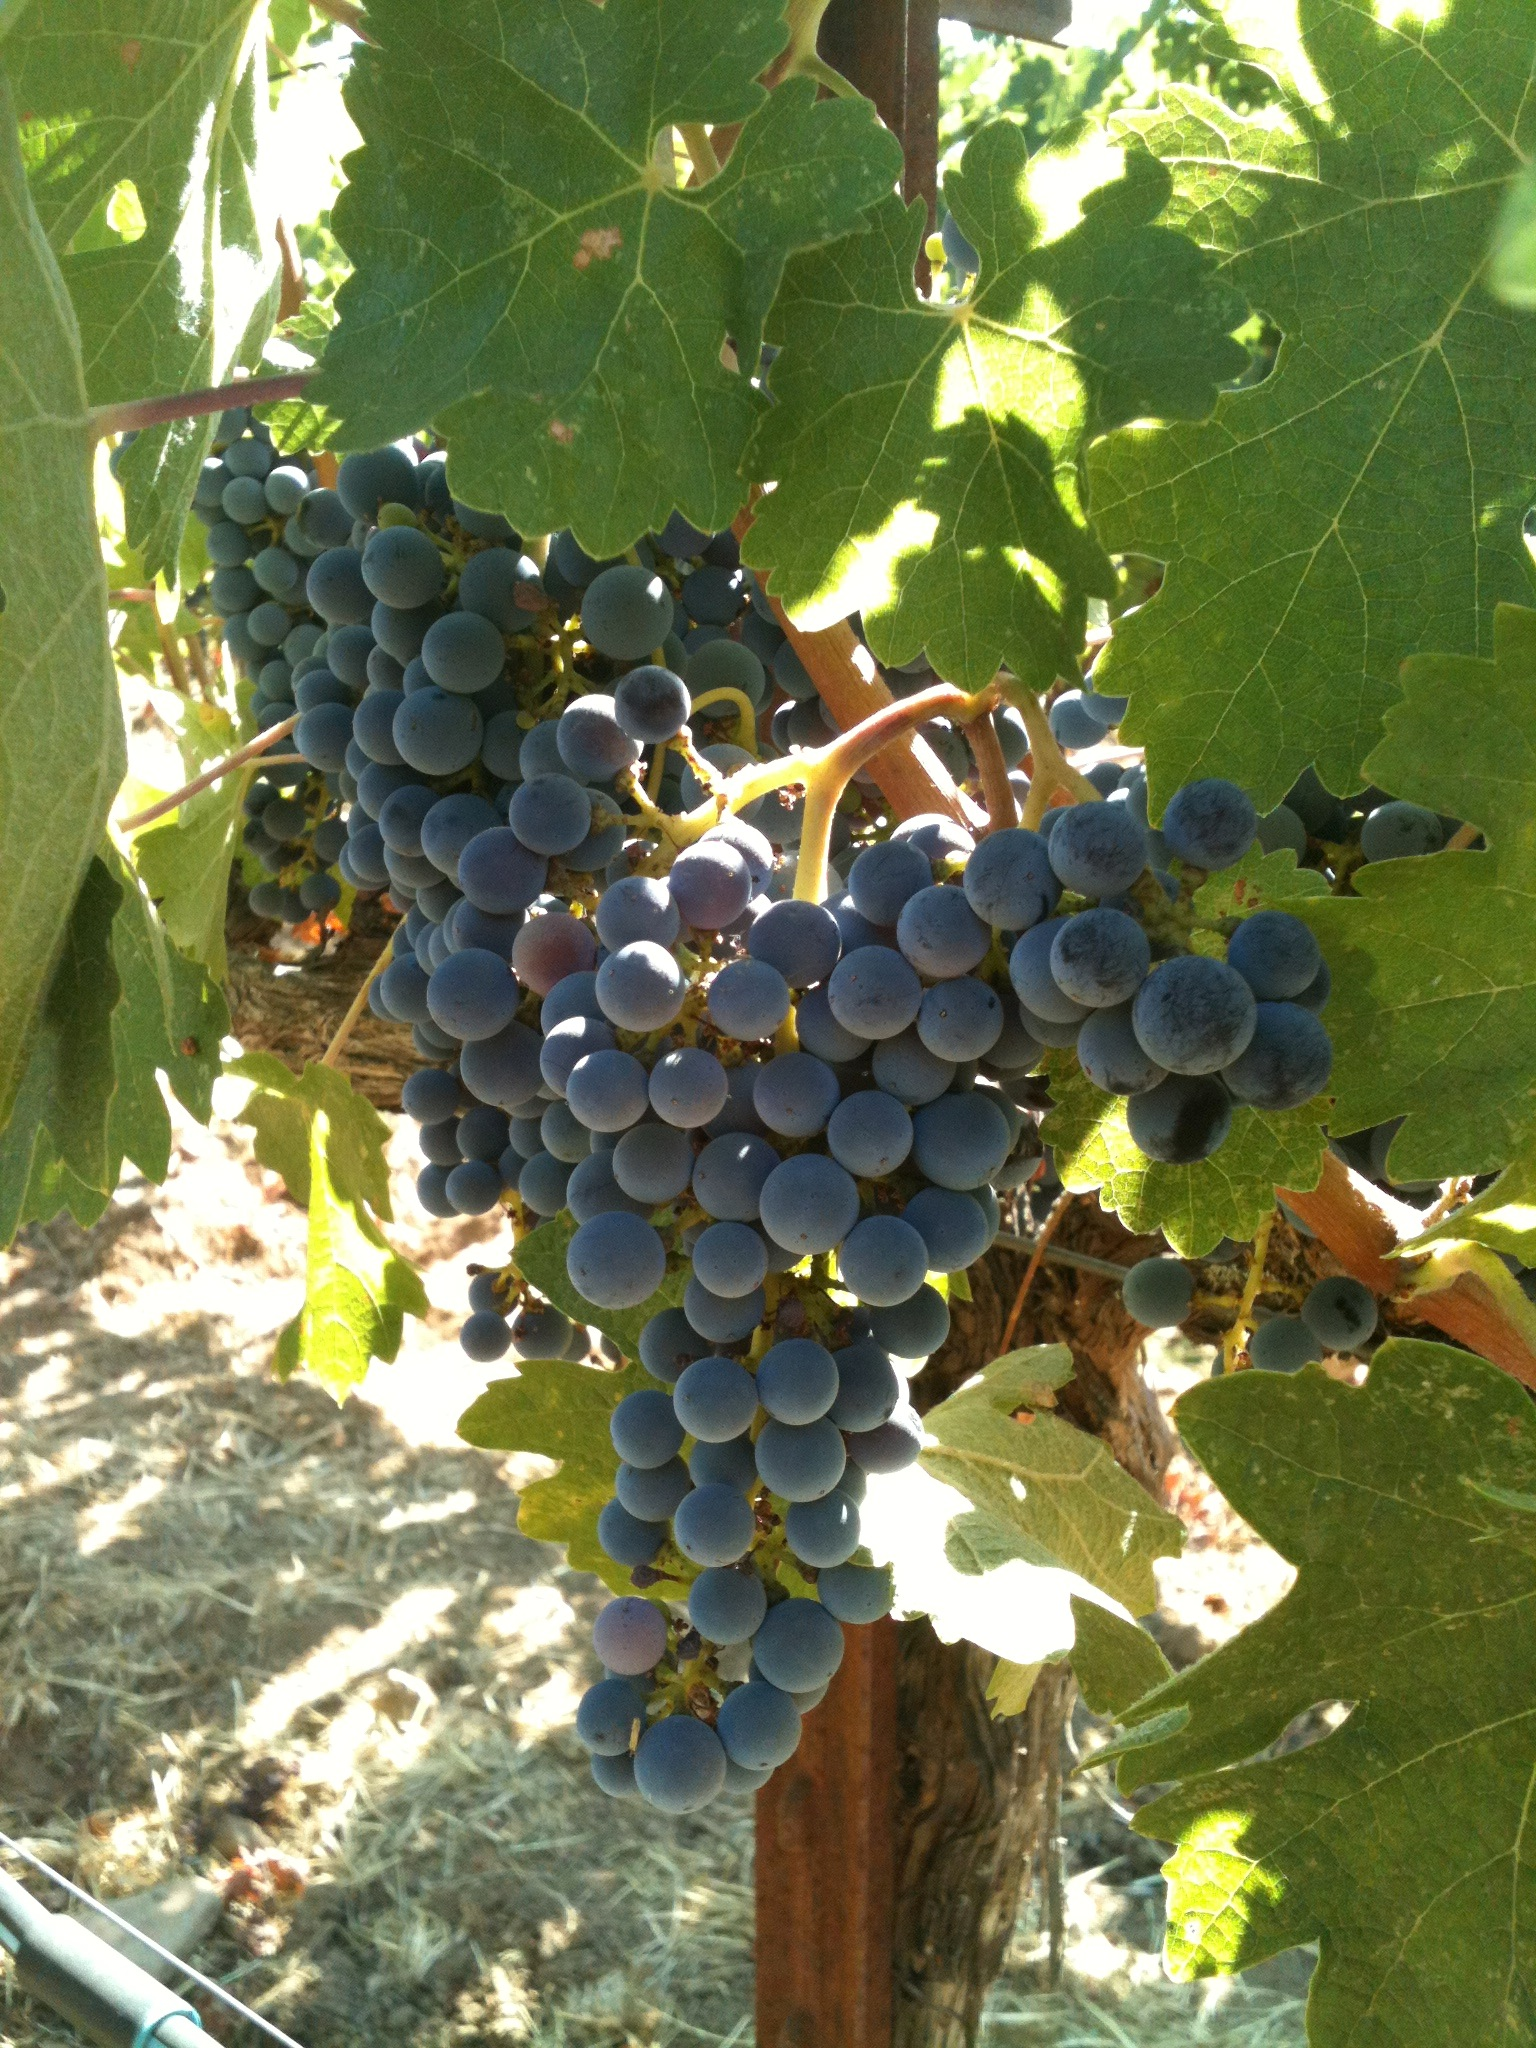 26 brix - Table grapes vs wine grapes ...